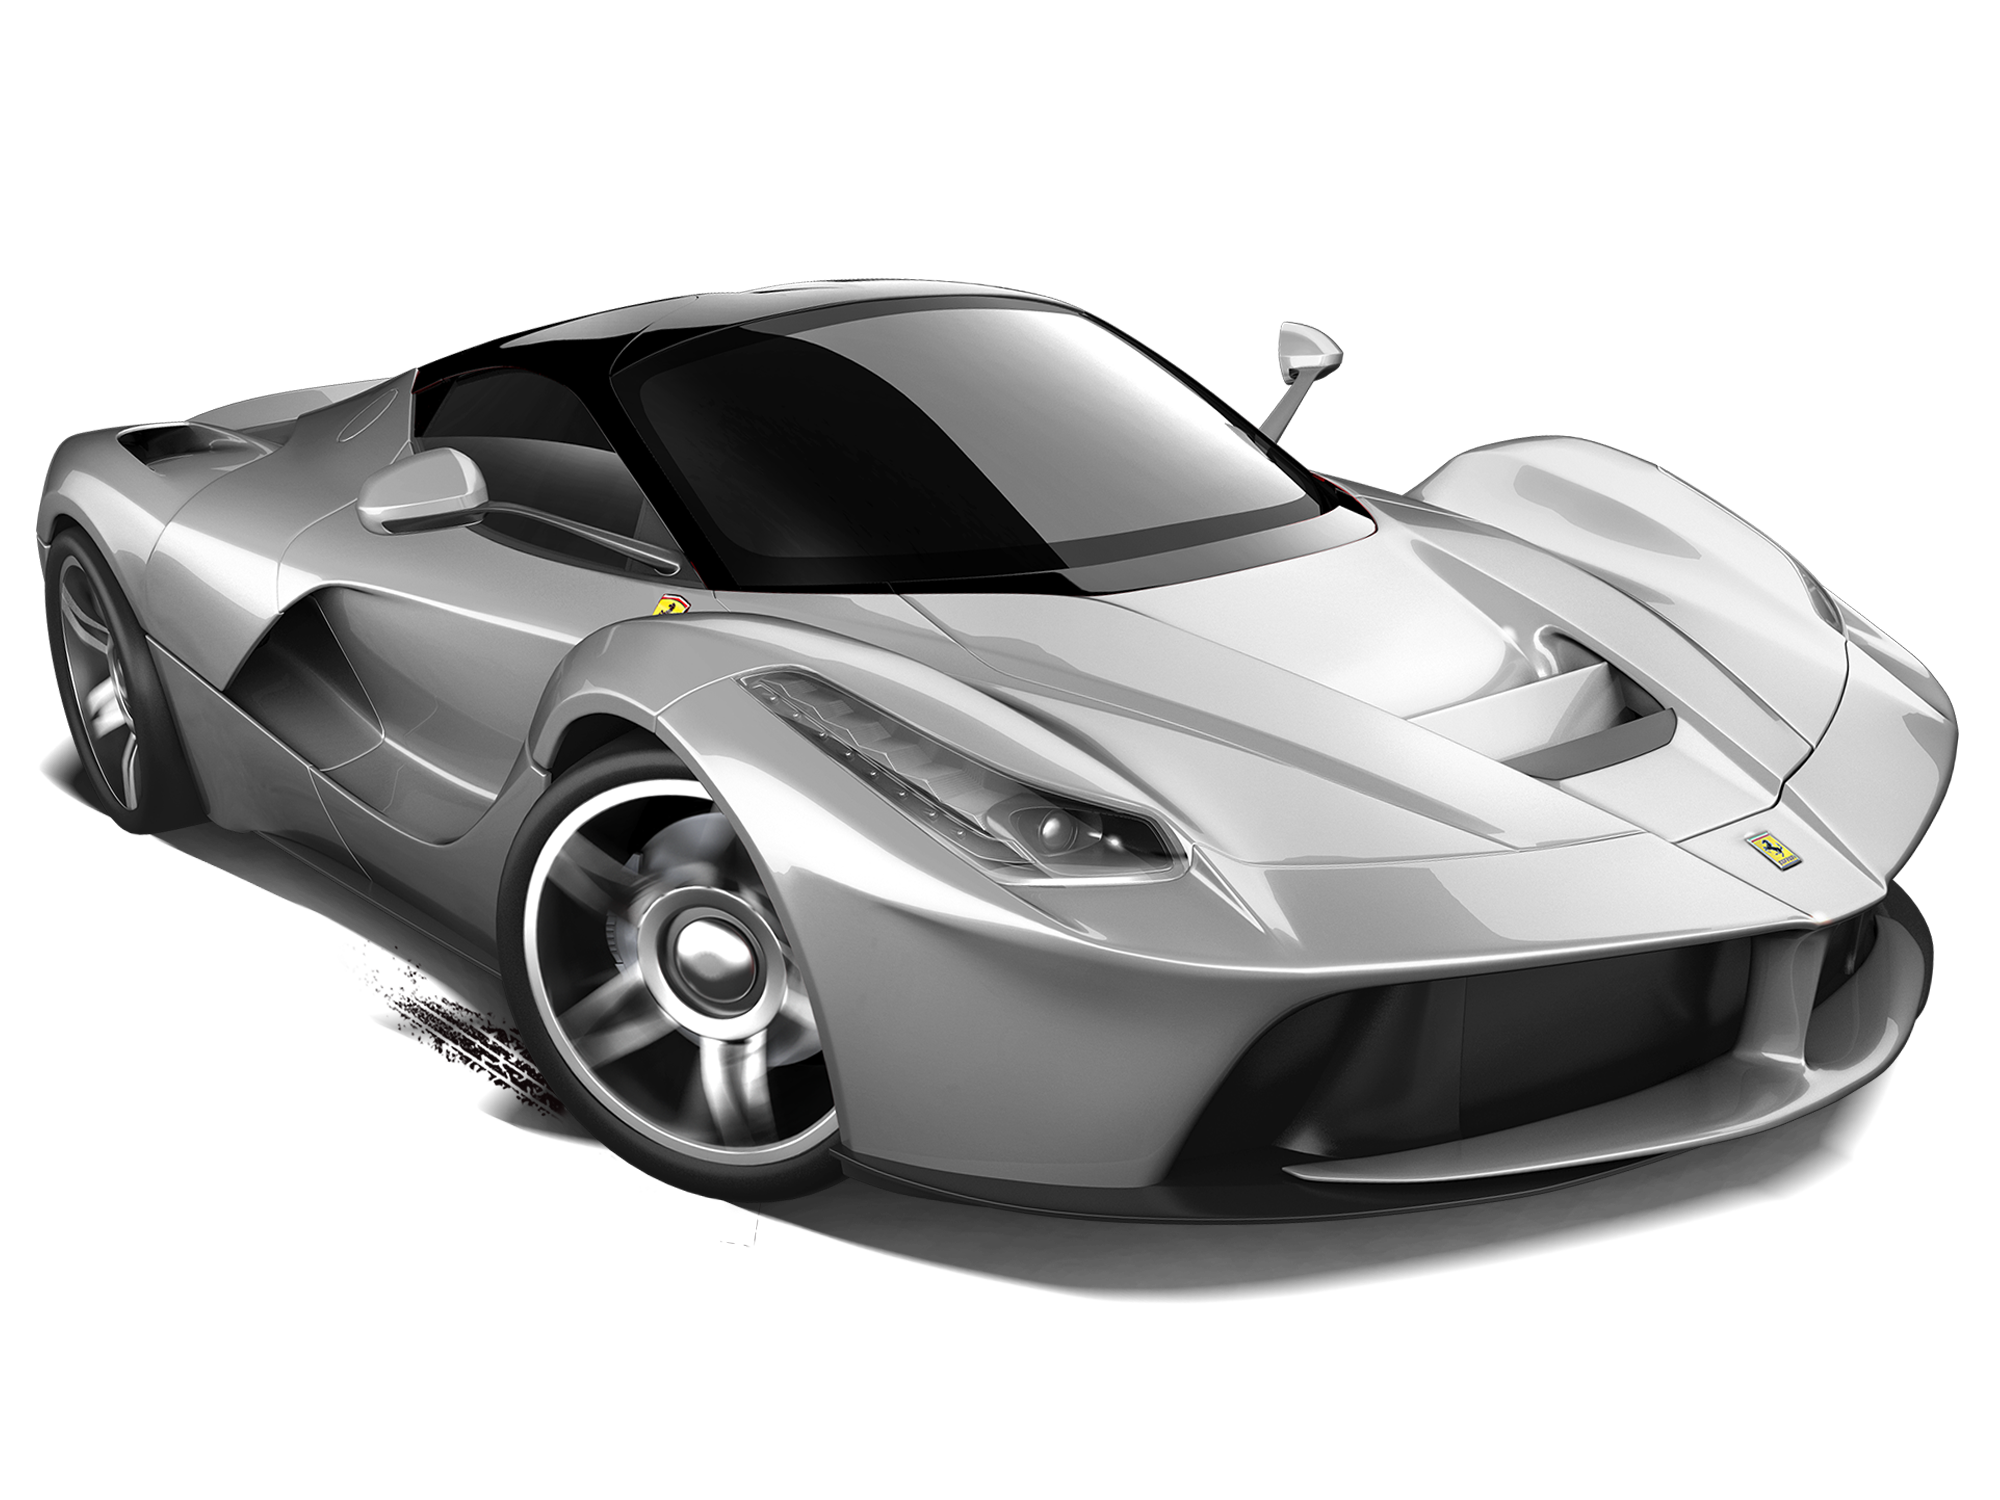 Laferrari drawing black and white. Mattel hot wheels diecast